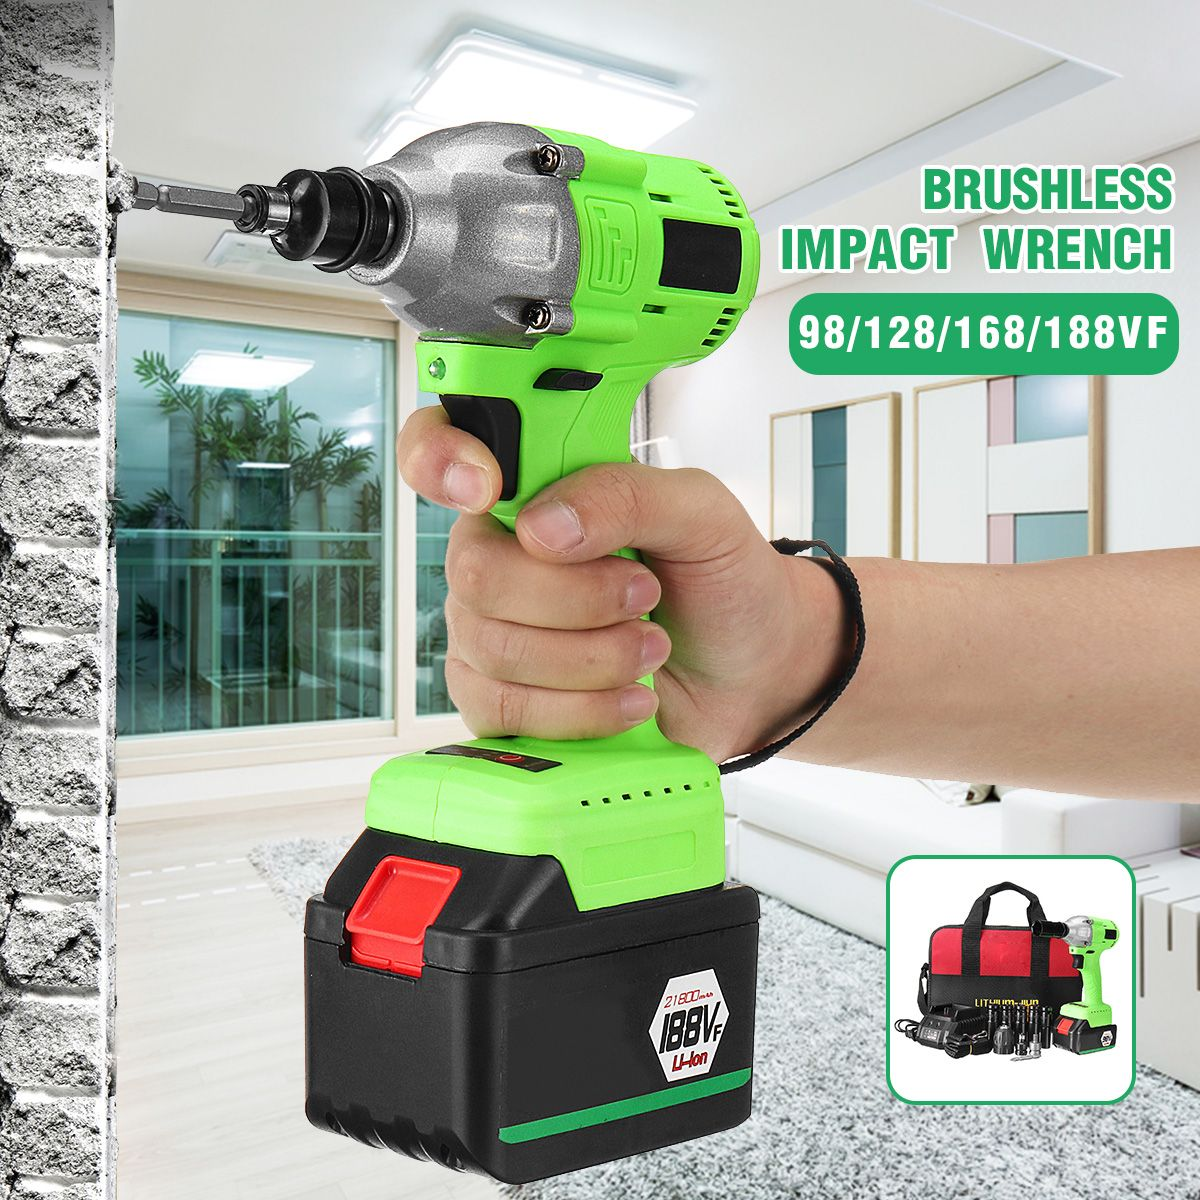 460Nm Electric Impact Wrench 3300RPM Rechargeable Li-Ion Battery Electric Brushless Wrench Cordless Home Hand Power Tool